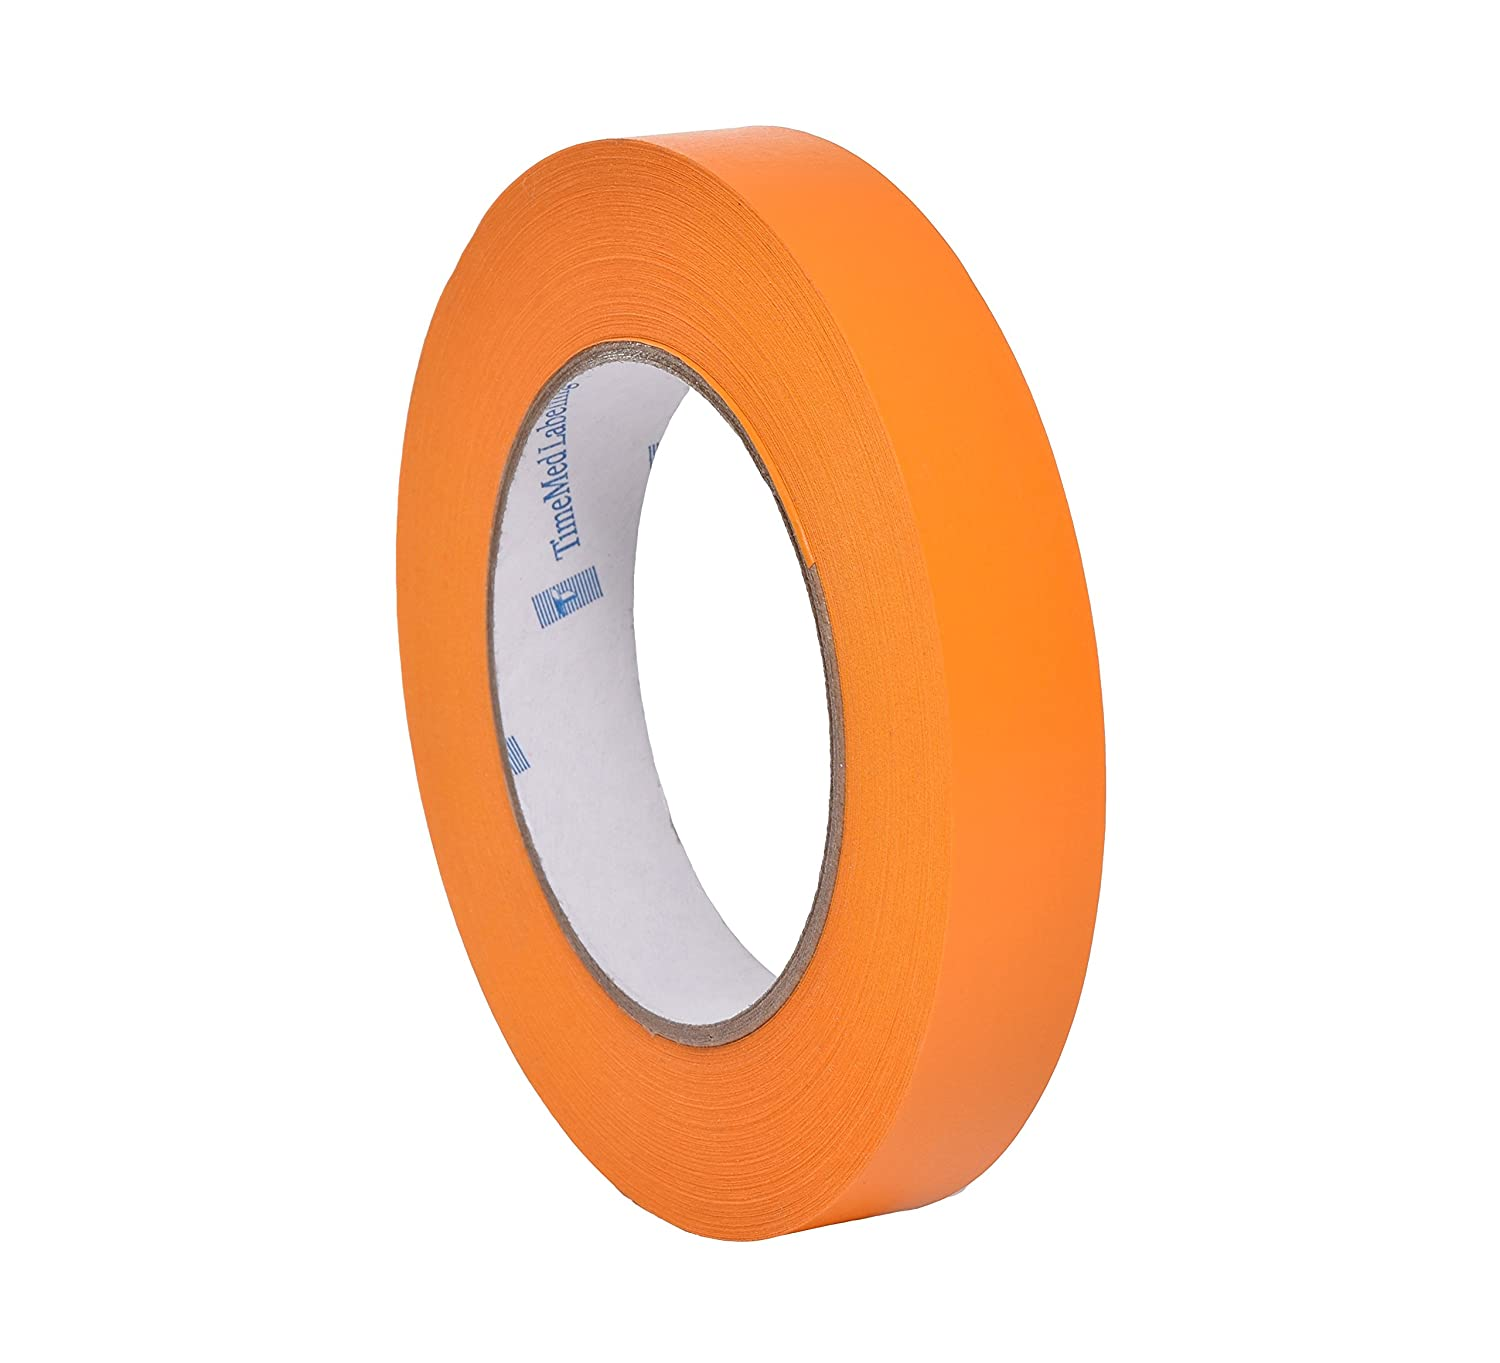 Camlab 1151369 Labelling Tape, 3/4' Wide, 2160' (55 m) Long, Blue 3/4 Wide 2160 (55 m) Long